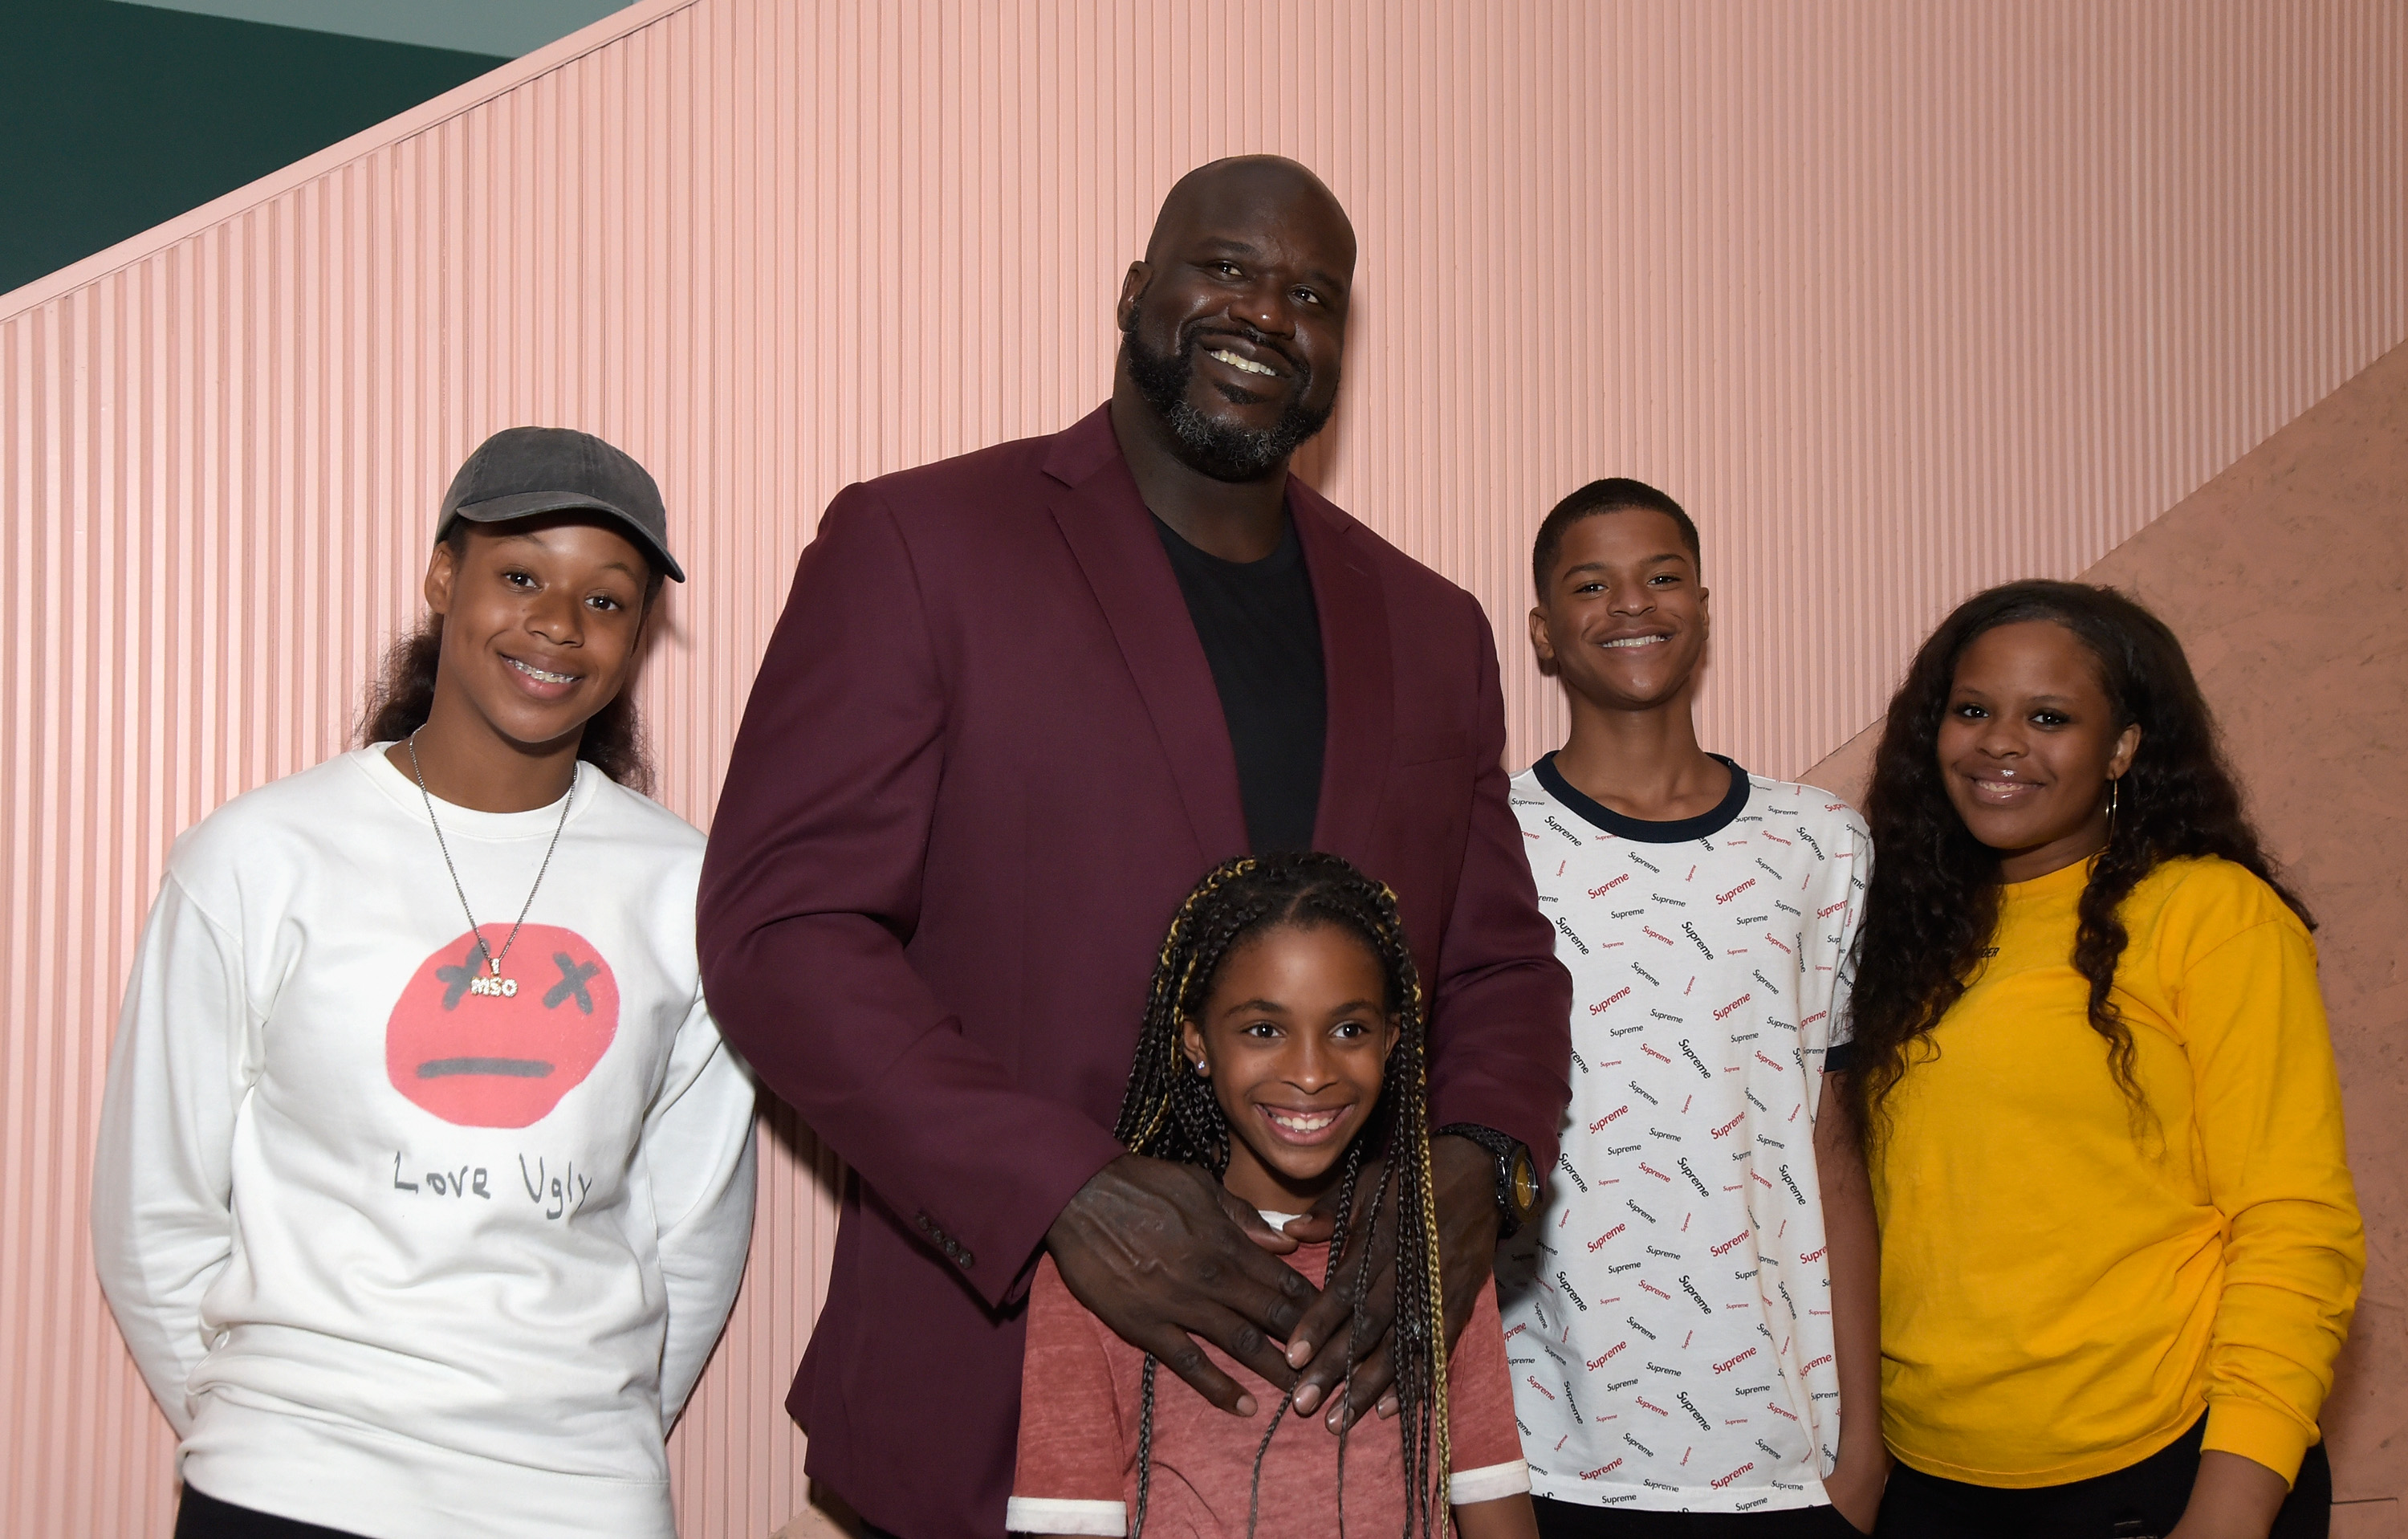 NBA player Shaquille O'Neal and kids